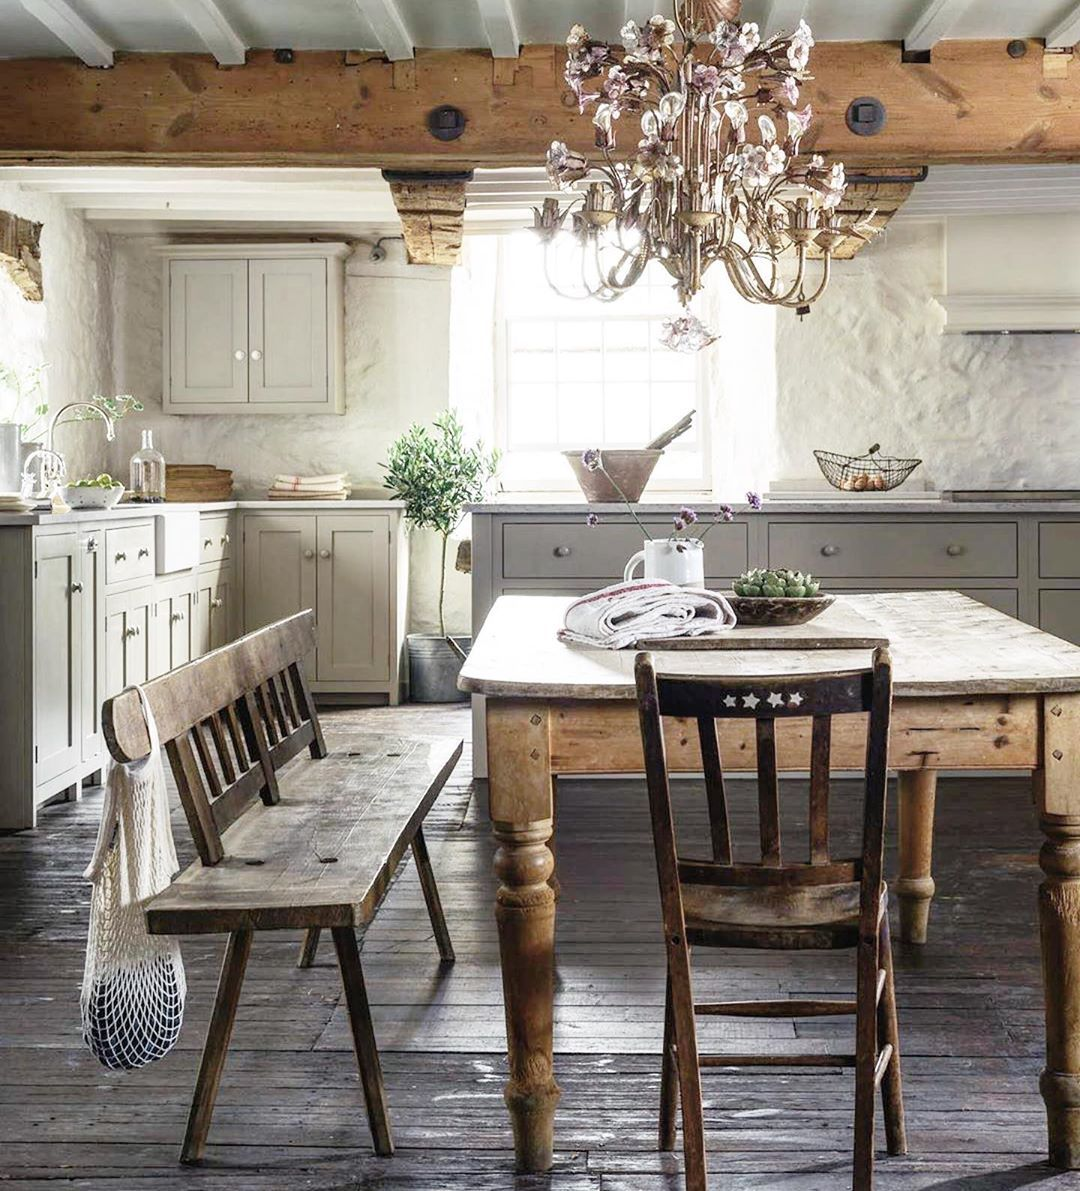 Pin by Ruth Penner on kitchen Country kitchen designs